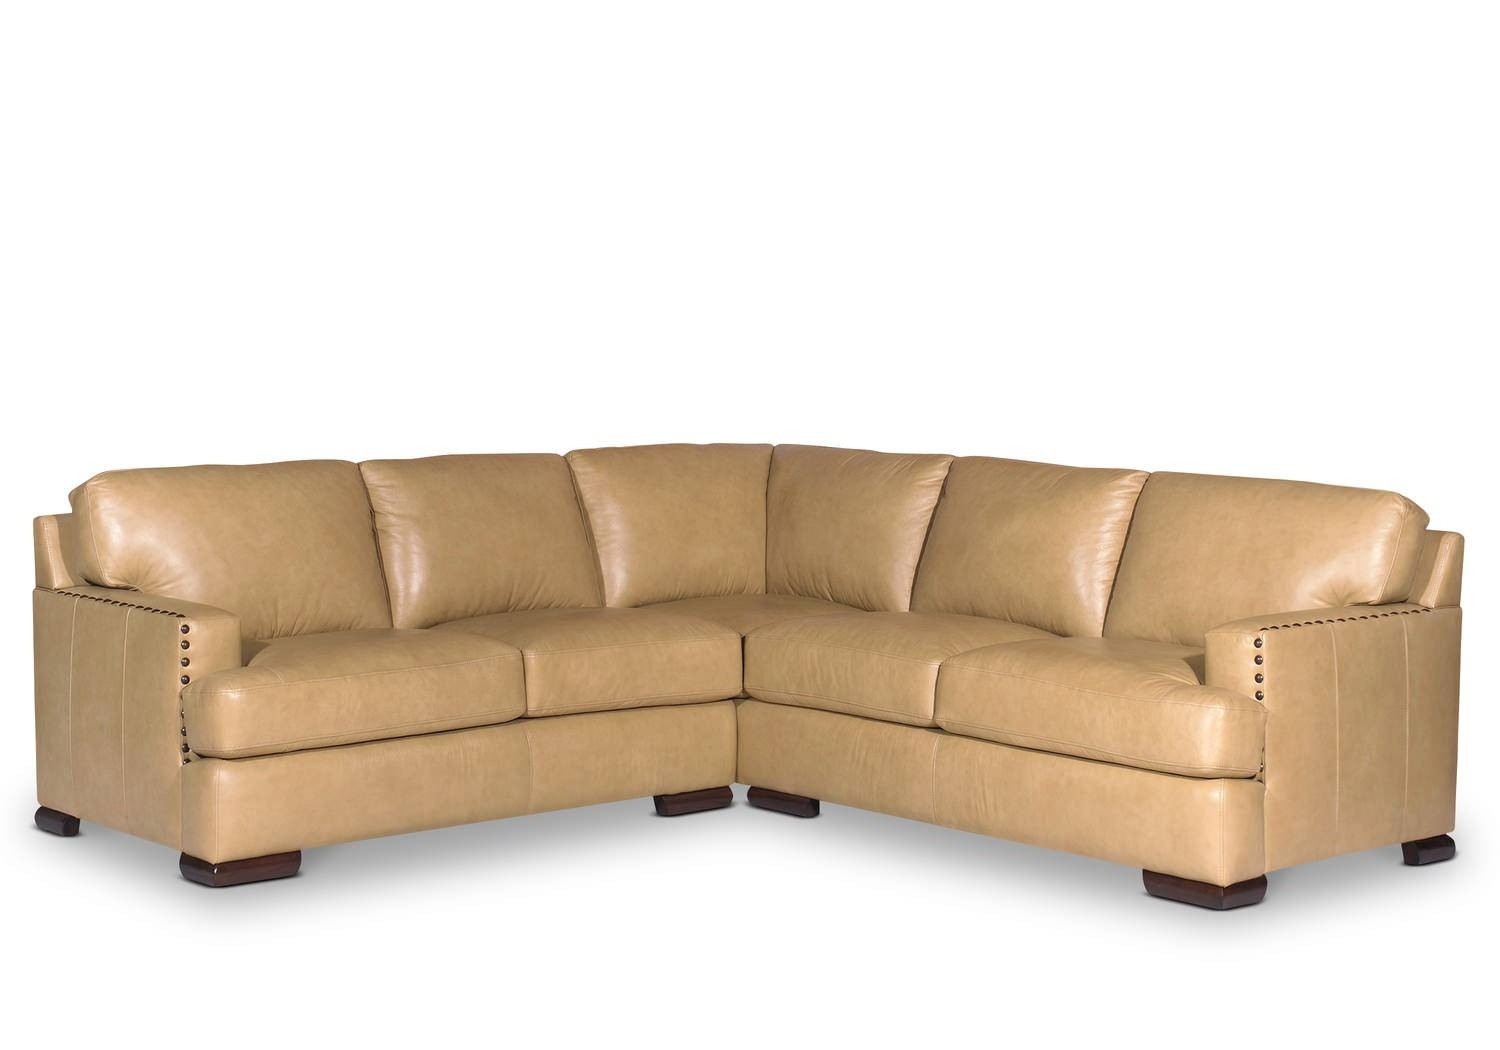 Cajole 2 Piece Leather Sectional | Hom Furniture | Furniture within Craftmaster Sectional Sofa (Image 4 of 30)